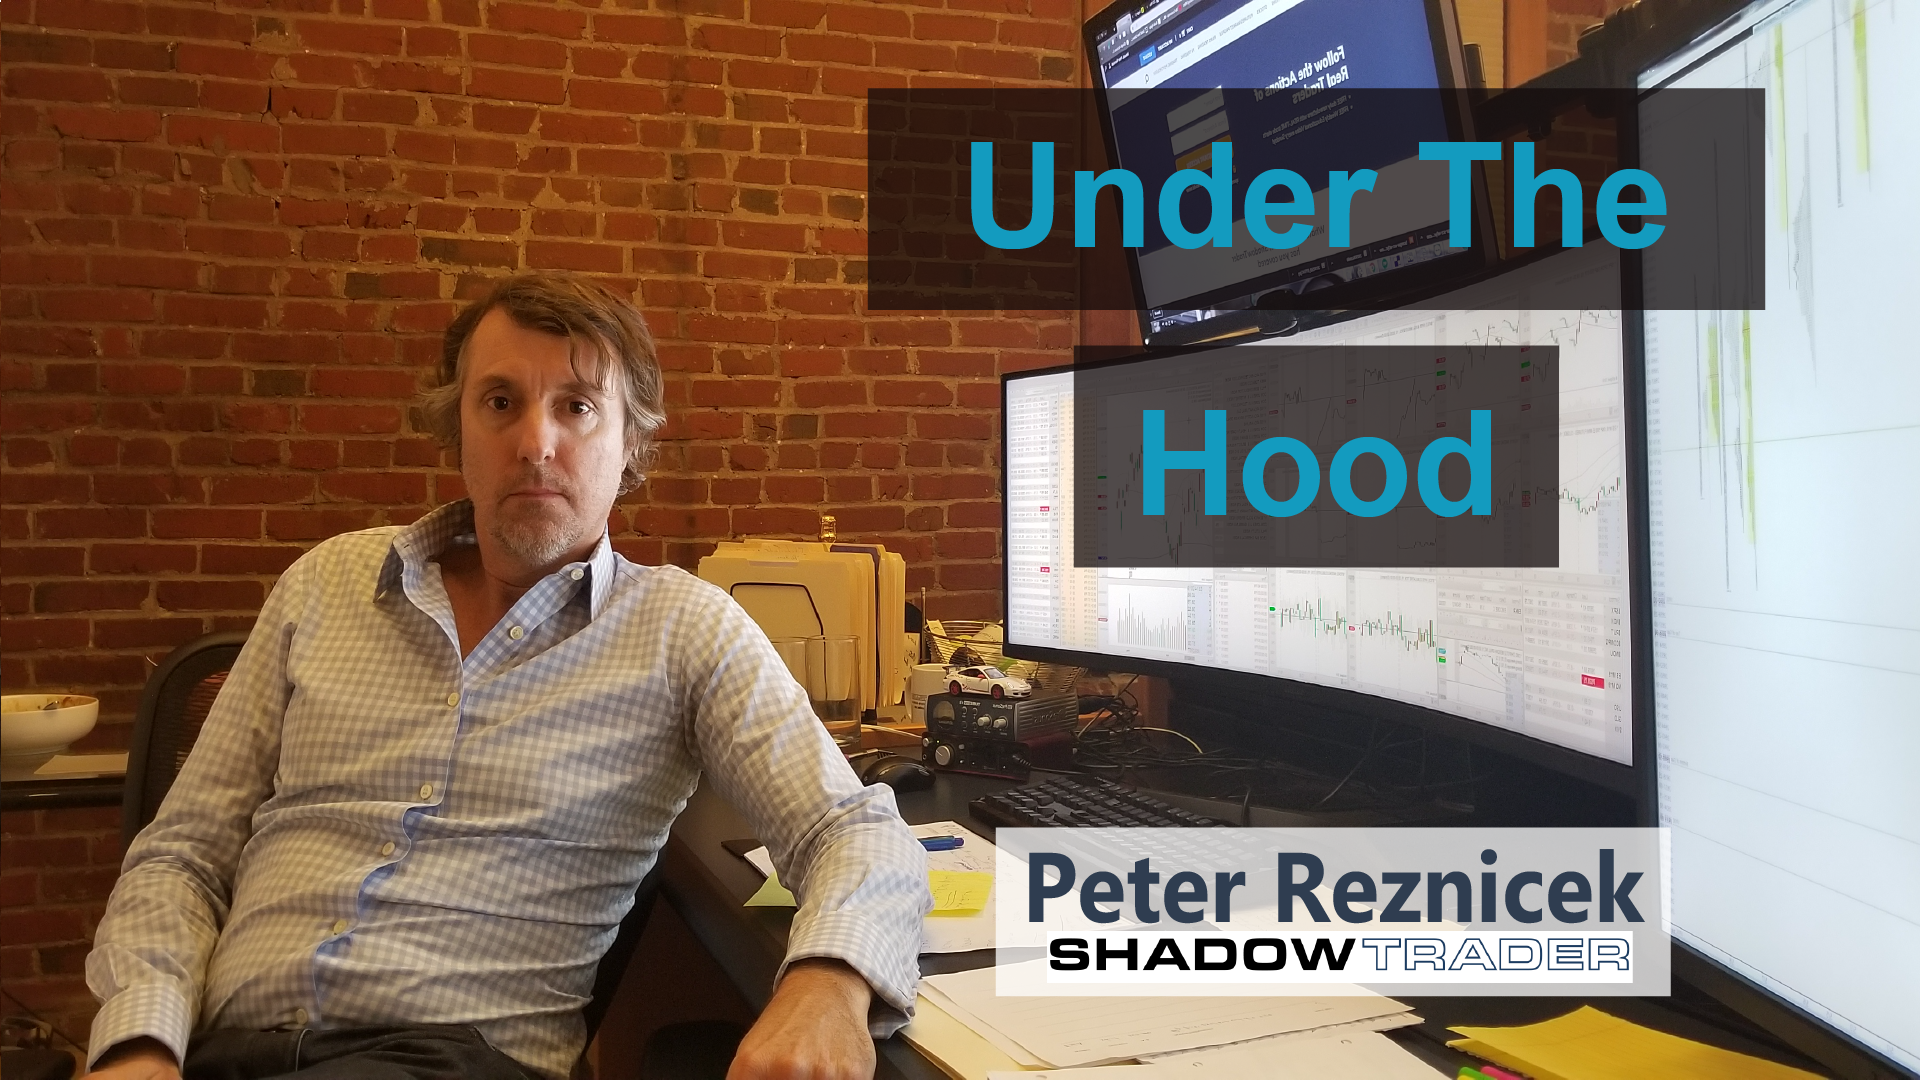 ShadowTrader Video Weekly 05.19.19 | Under the Hood